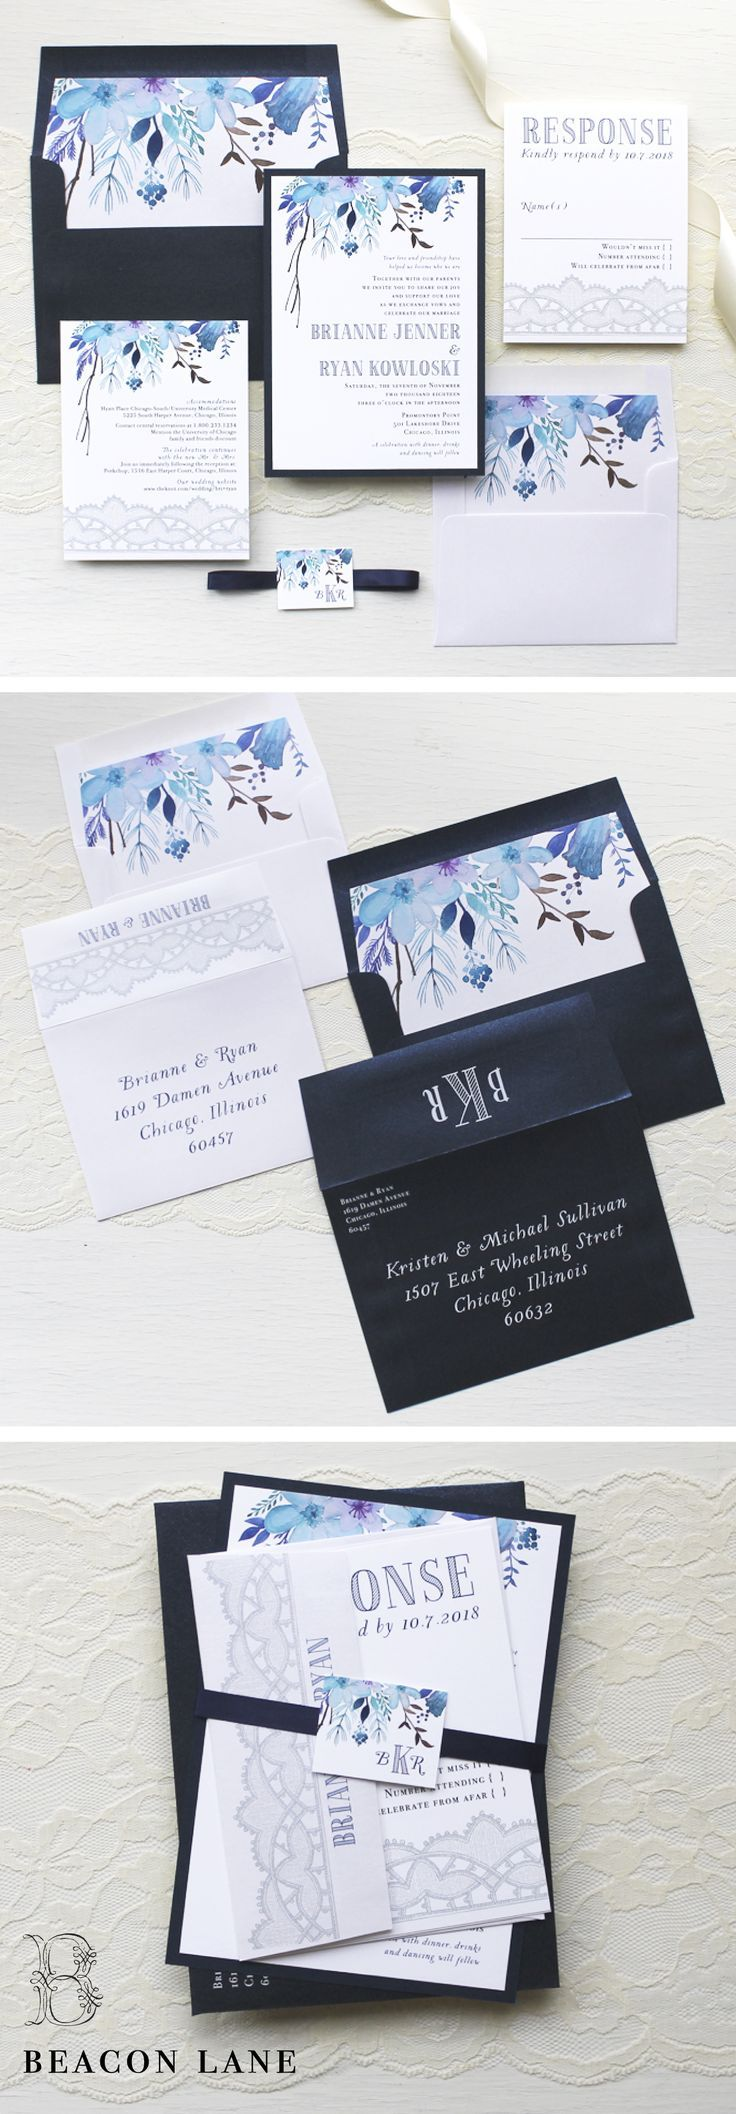 Indigo Blue Floral Watercolor Wedding Invitations with modern shades of navy blue, white, and silver lace. Complete the look with custom monogram, matching envelope liners and guest addressing in white ink. Oh so chic!